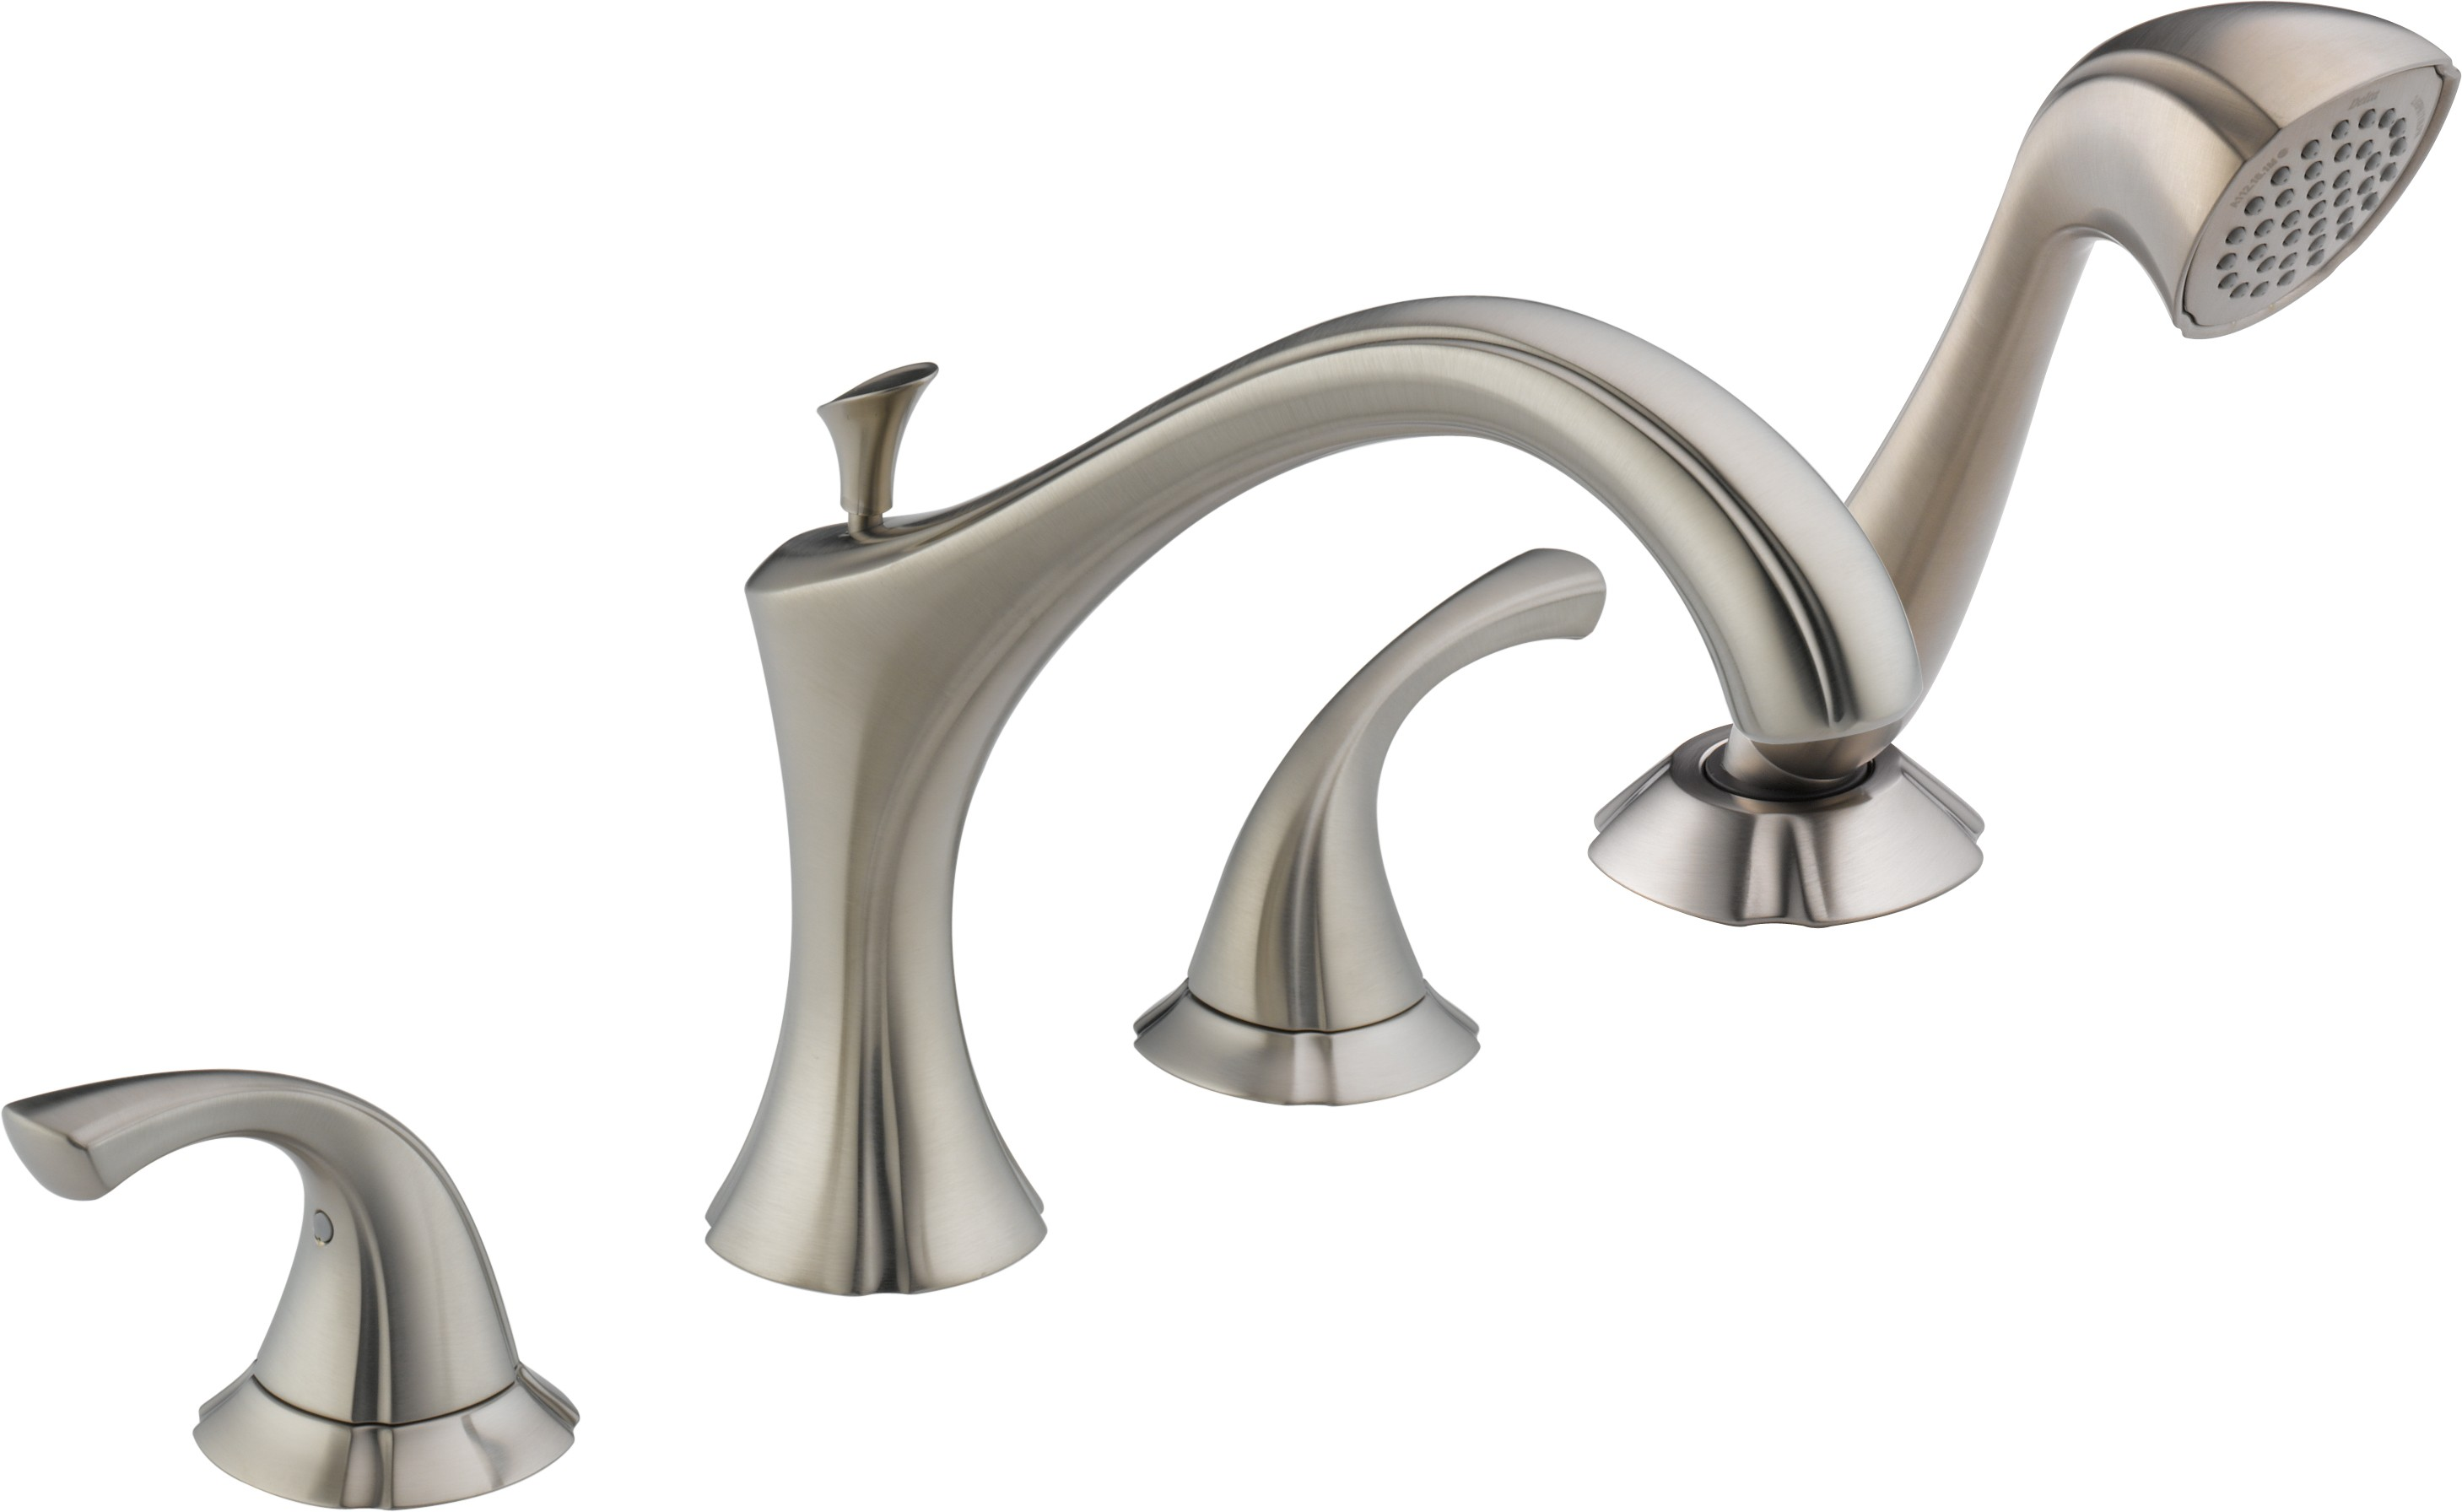 delta addison deck mount bathtub faucet trim with hand shower t4792